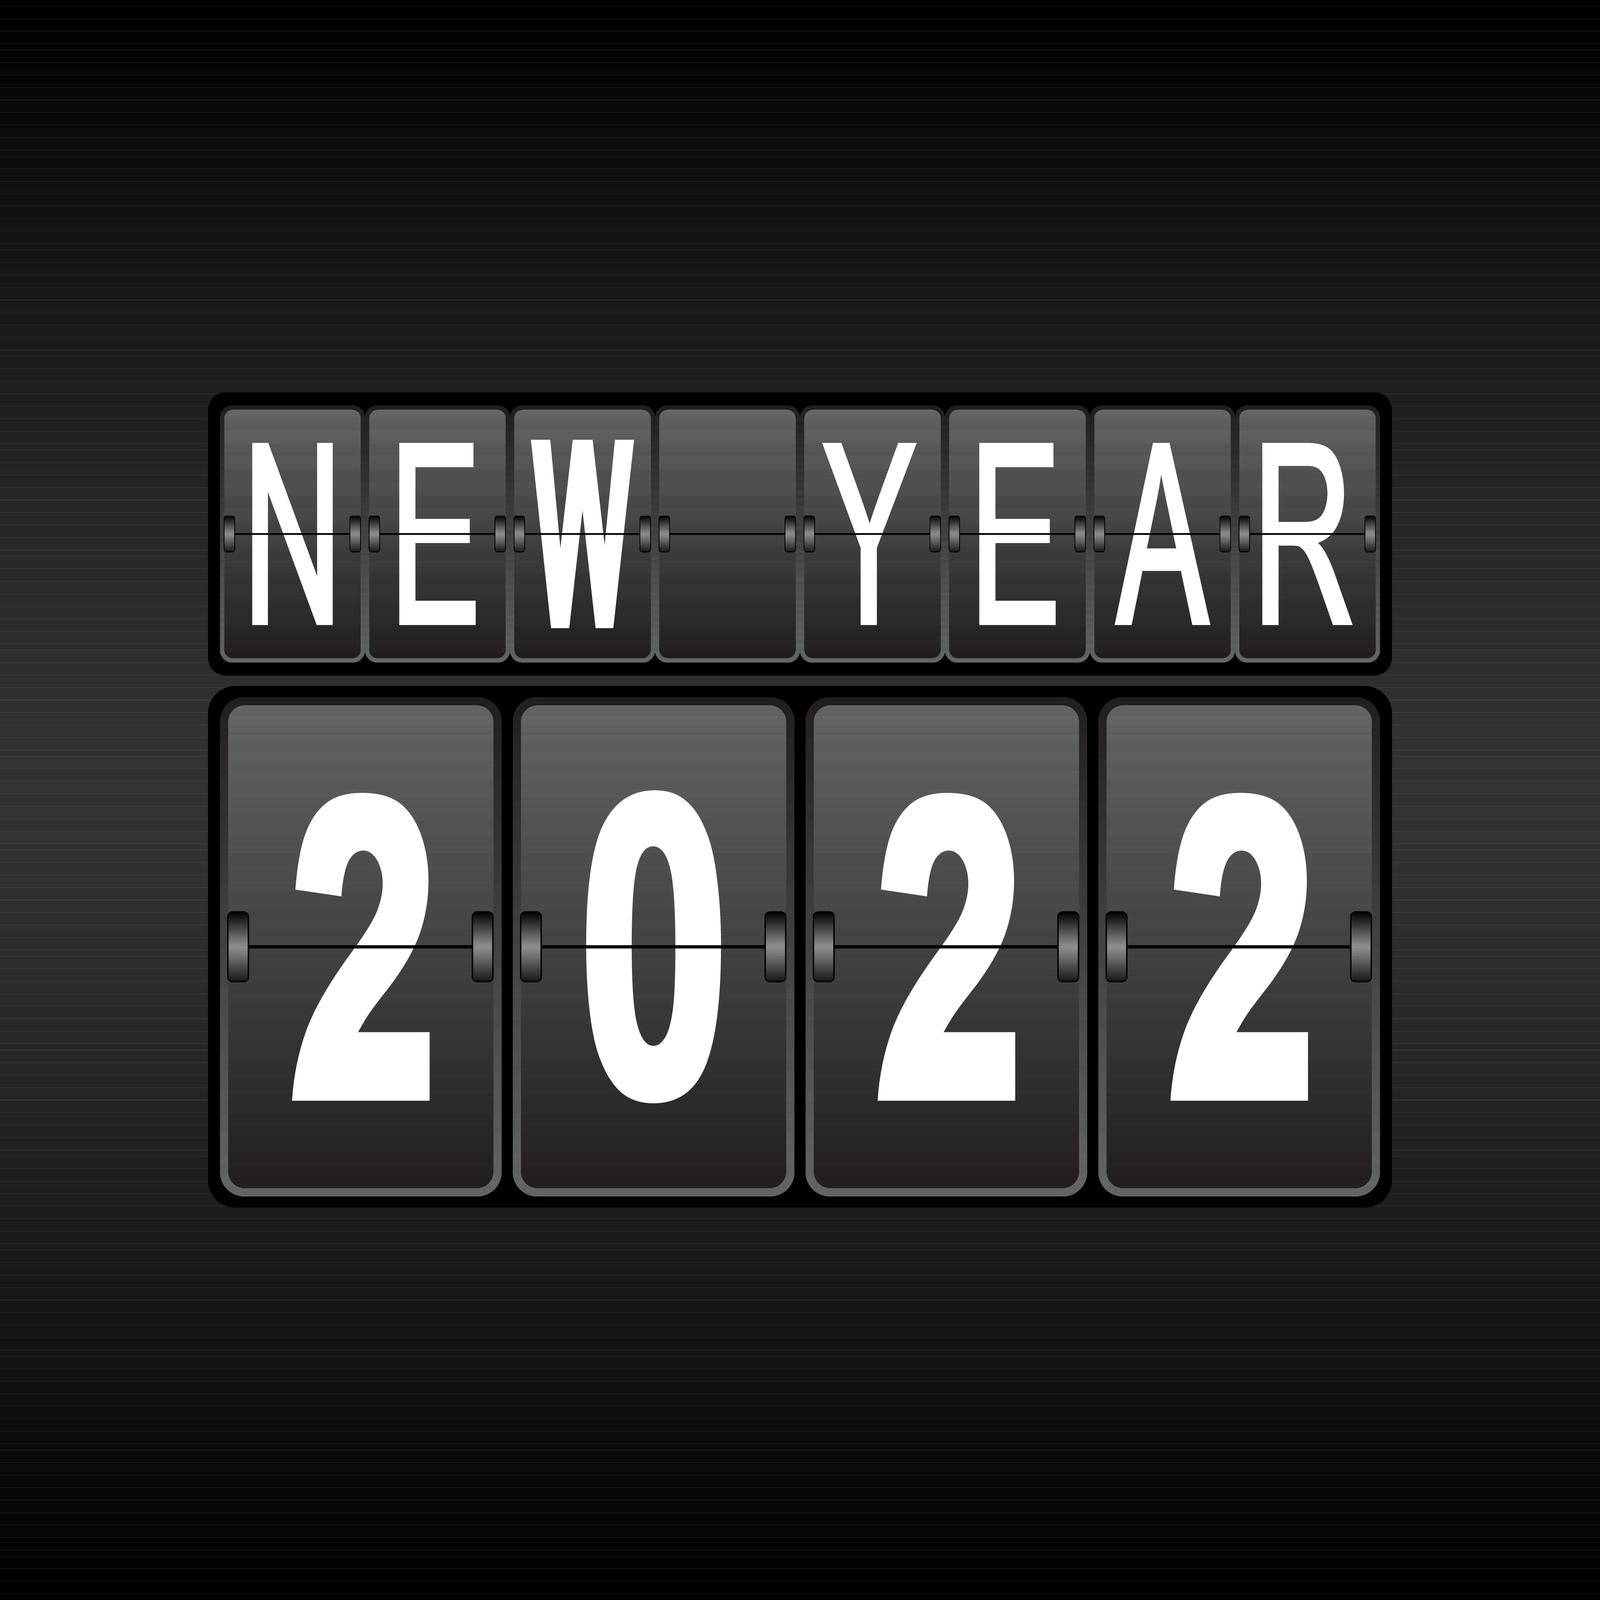 Odometer with the numbers 2022. The new year 2022 is on the odometer. Merry Christmas and Happy New Year by Grommik